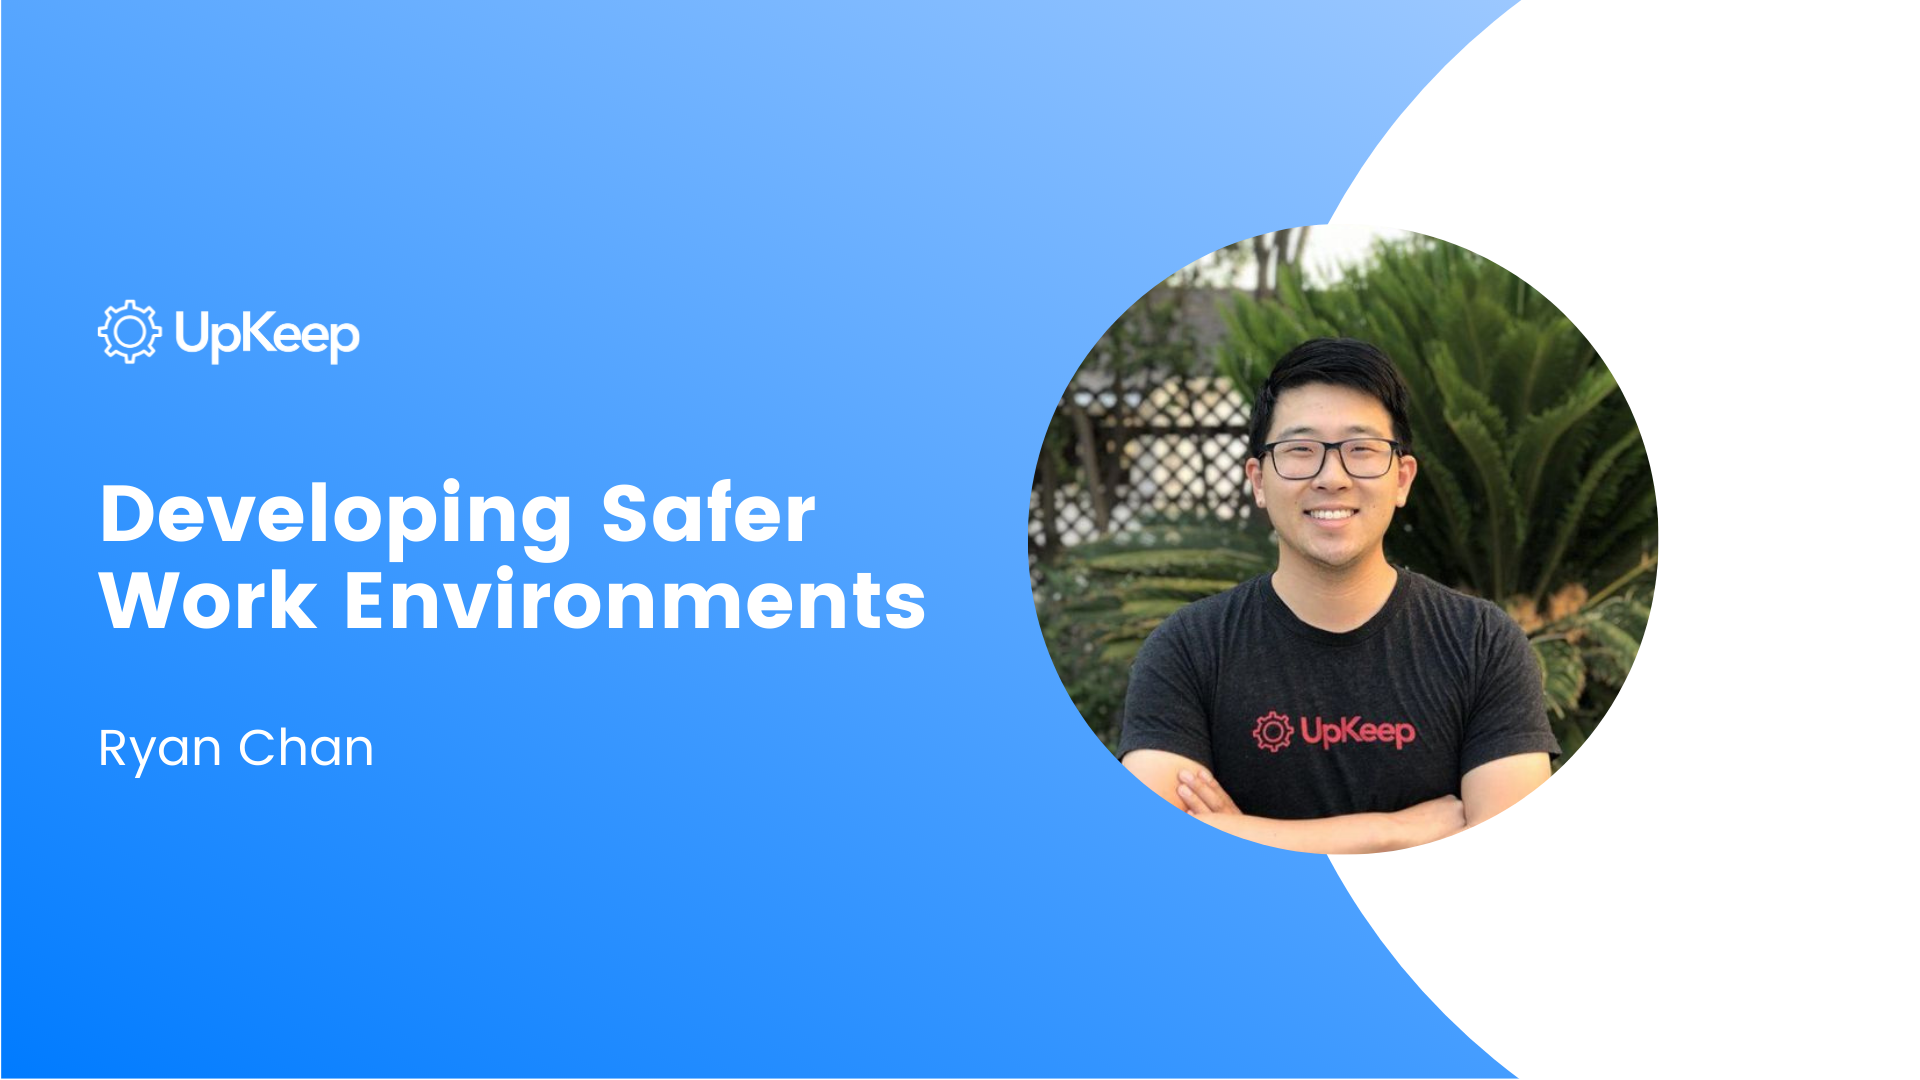 Developing Safer Work Environments